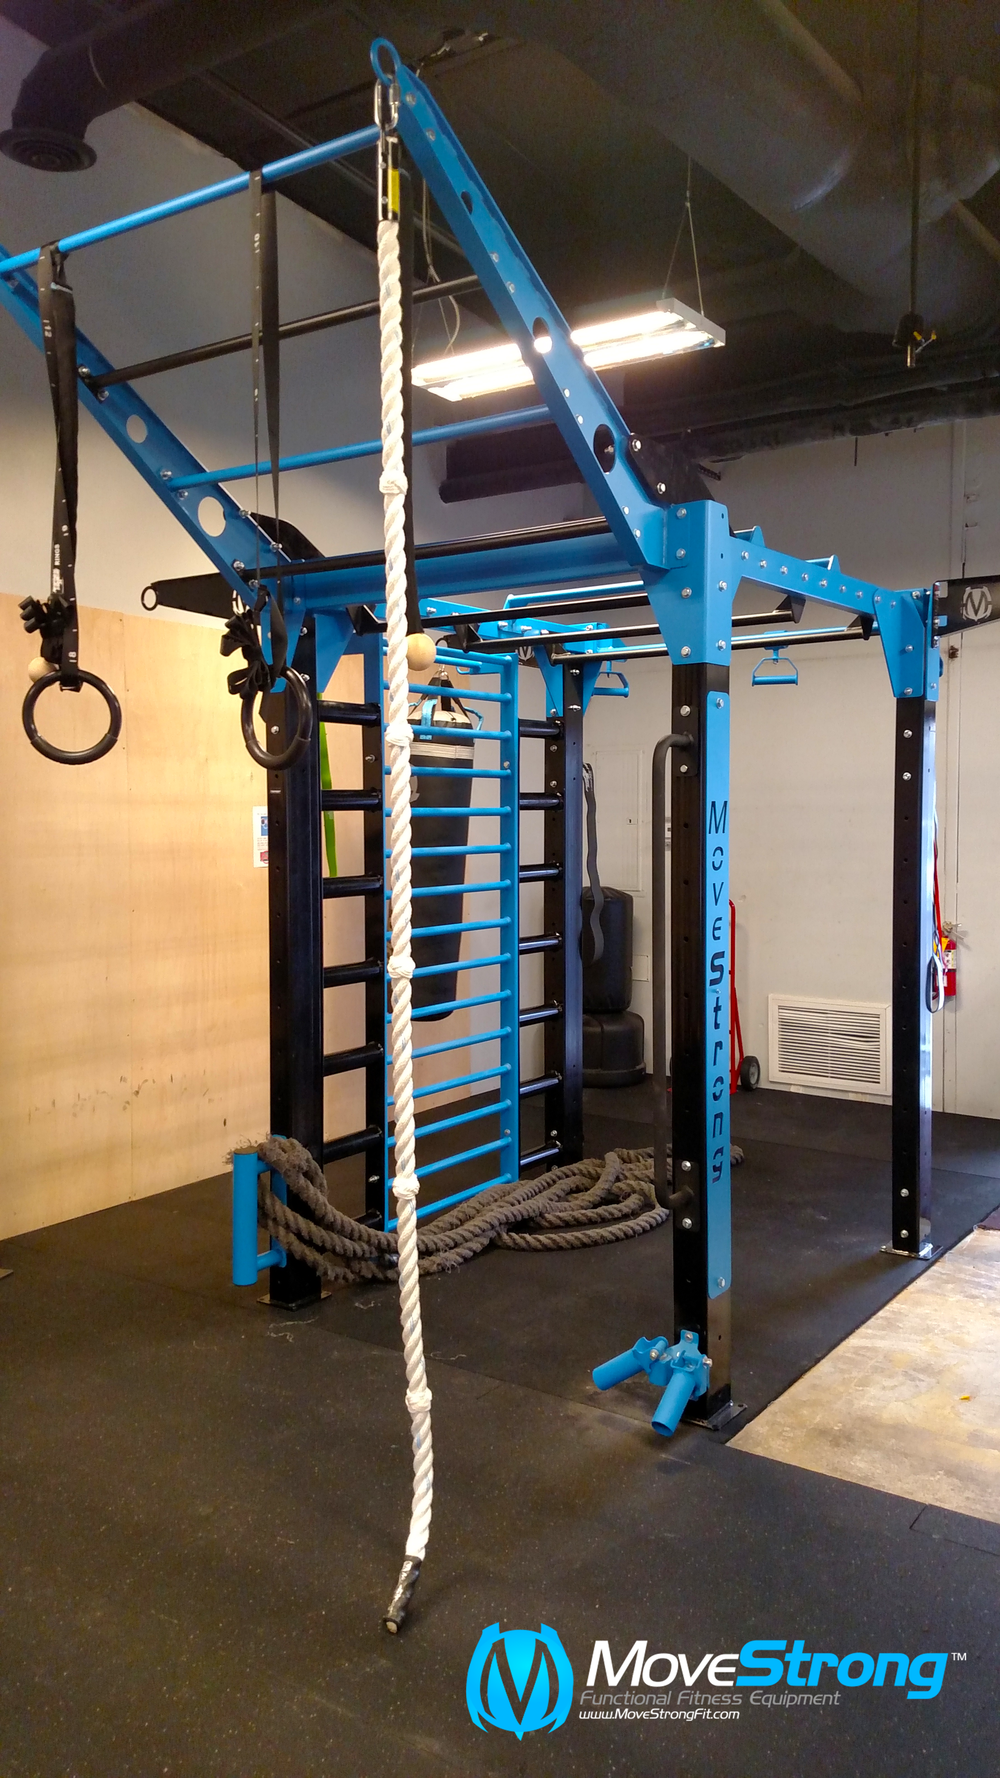 Functional Fitness equipment FTS Nova